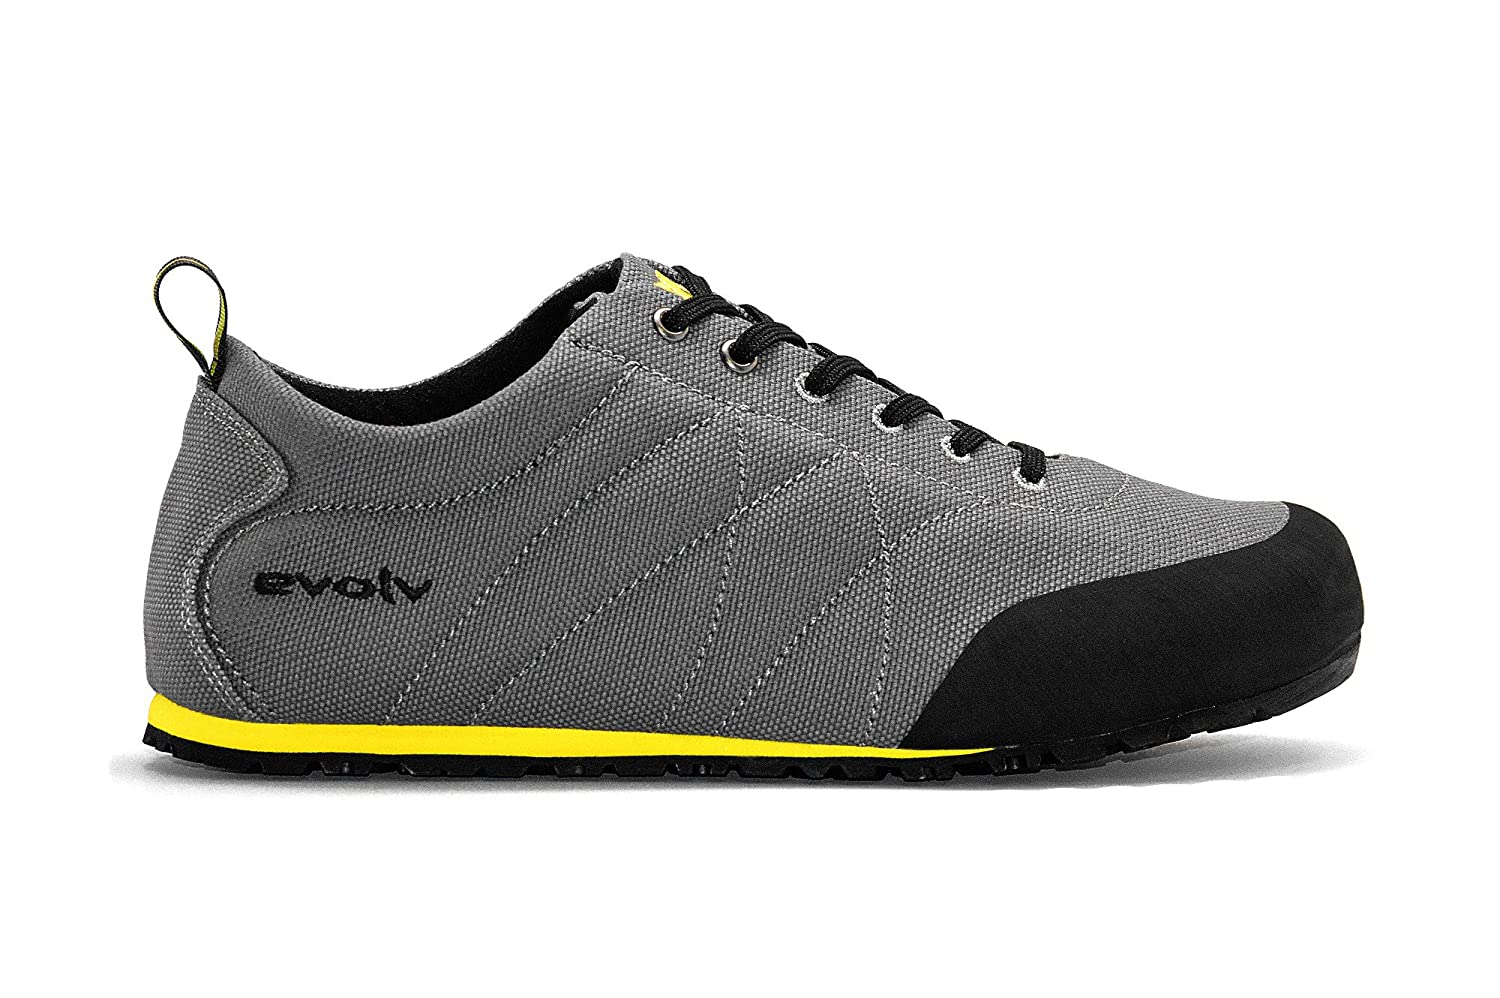 Evolv Cruzer Psyche Approach Shoe B00TGPCVFC 6.5 D(M) US|Slate